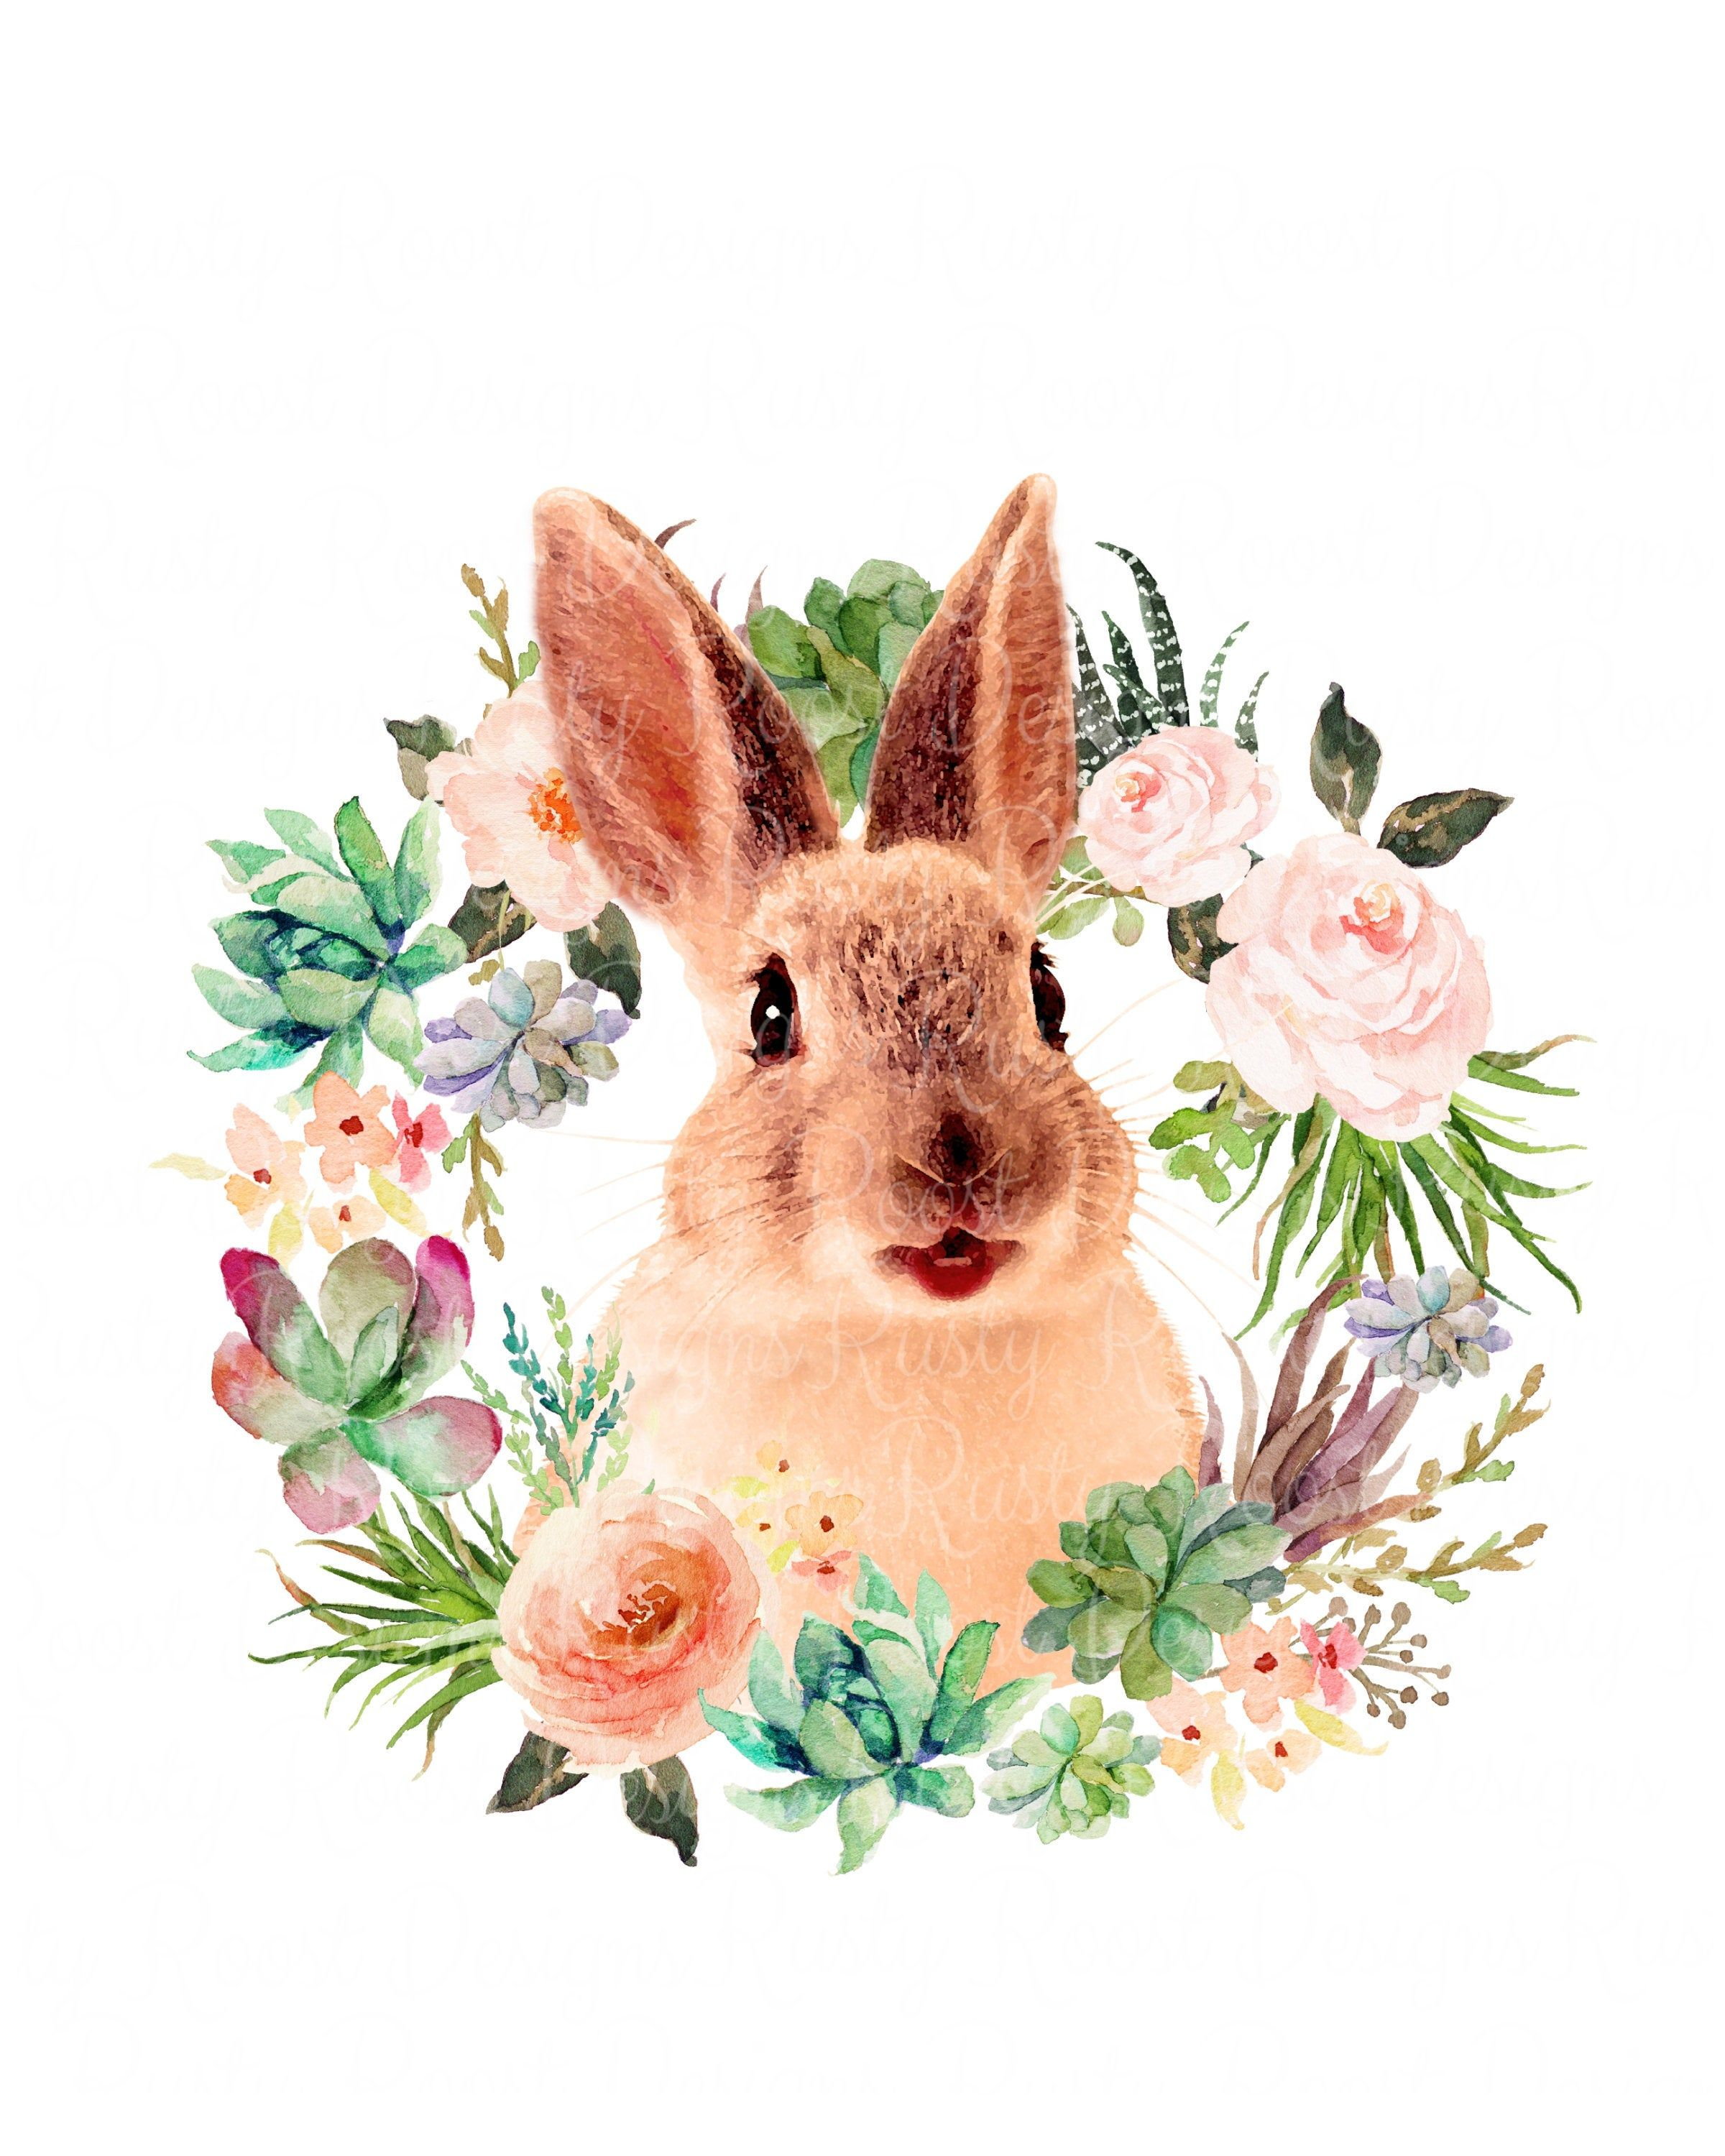 Easter Bunny Png Rabbit Png Sublimation Design Digital Download Bunny Sublimation Design Printable Tshirt Design Floral Watercolor Wreath In 2021 Floral Watercolor Wreath Watercolor Bunny Wreath